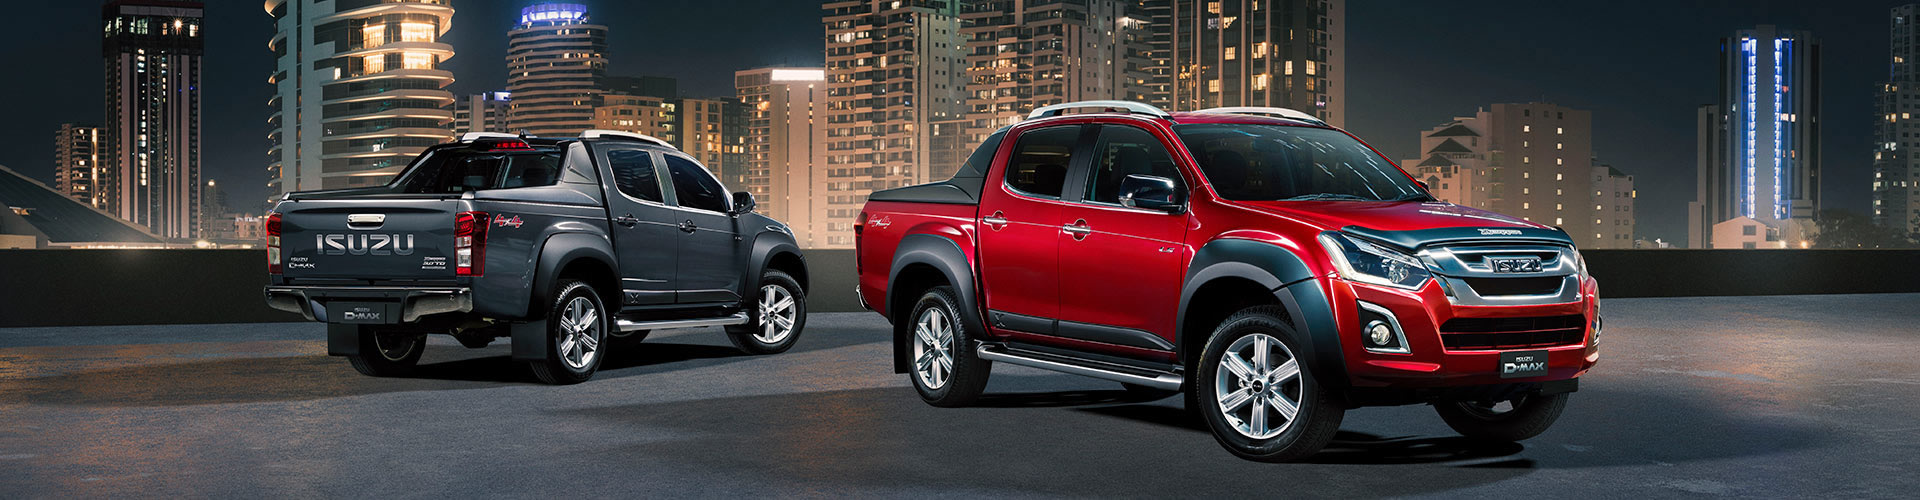 Isuzu UTE D-MAX and MU-X